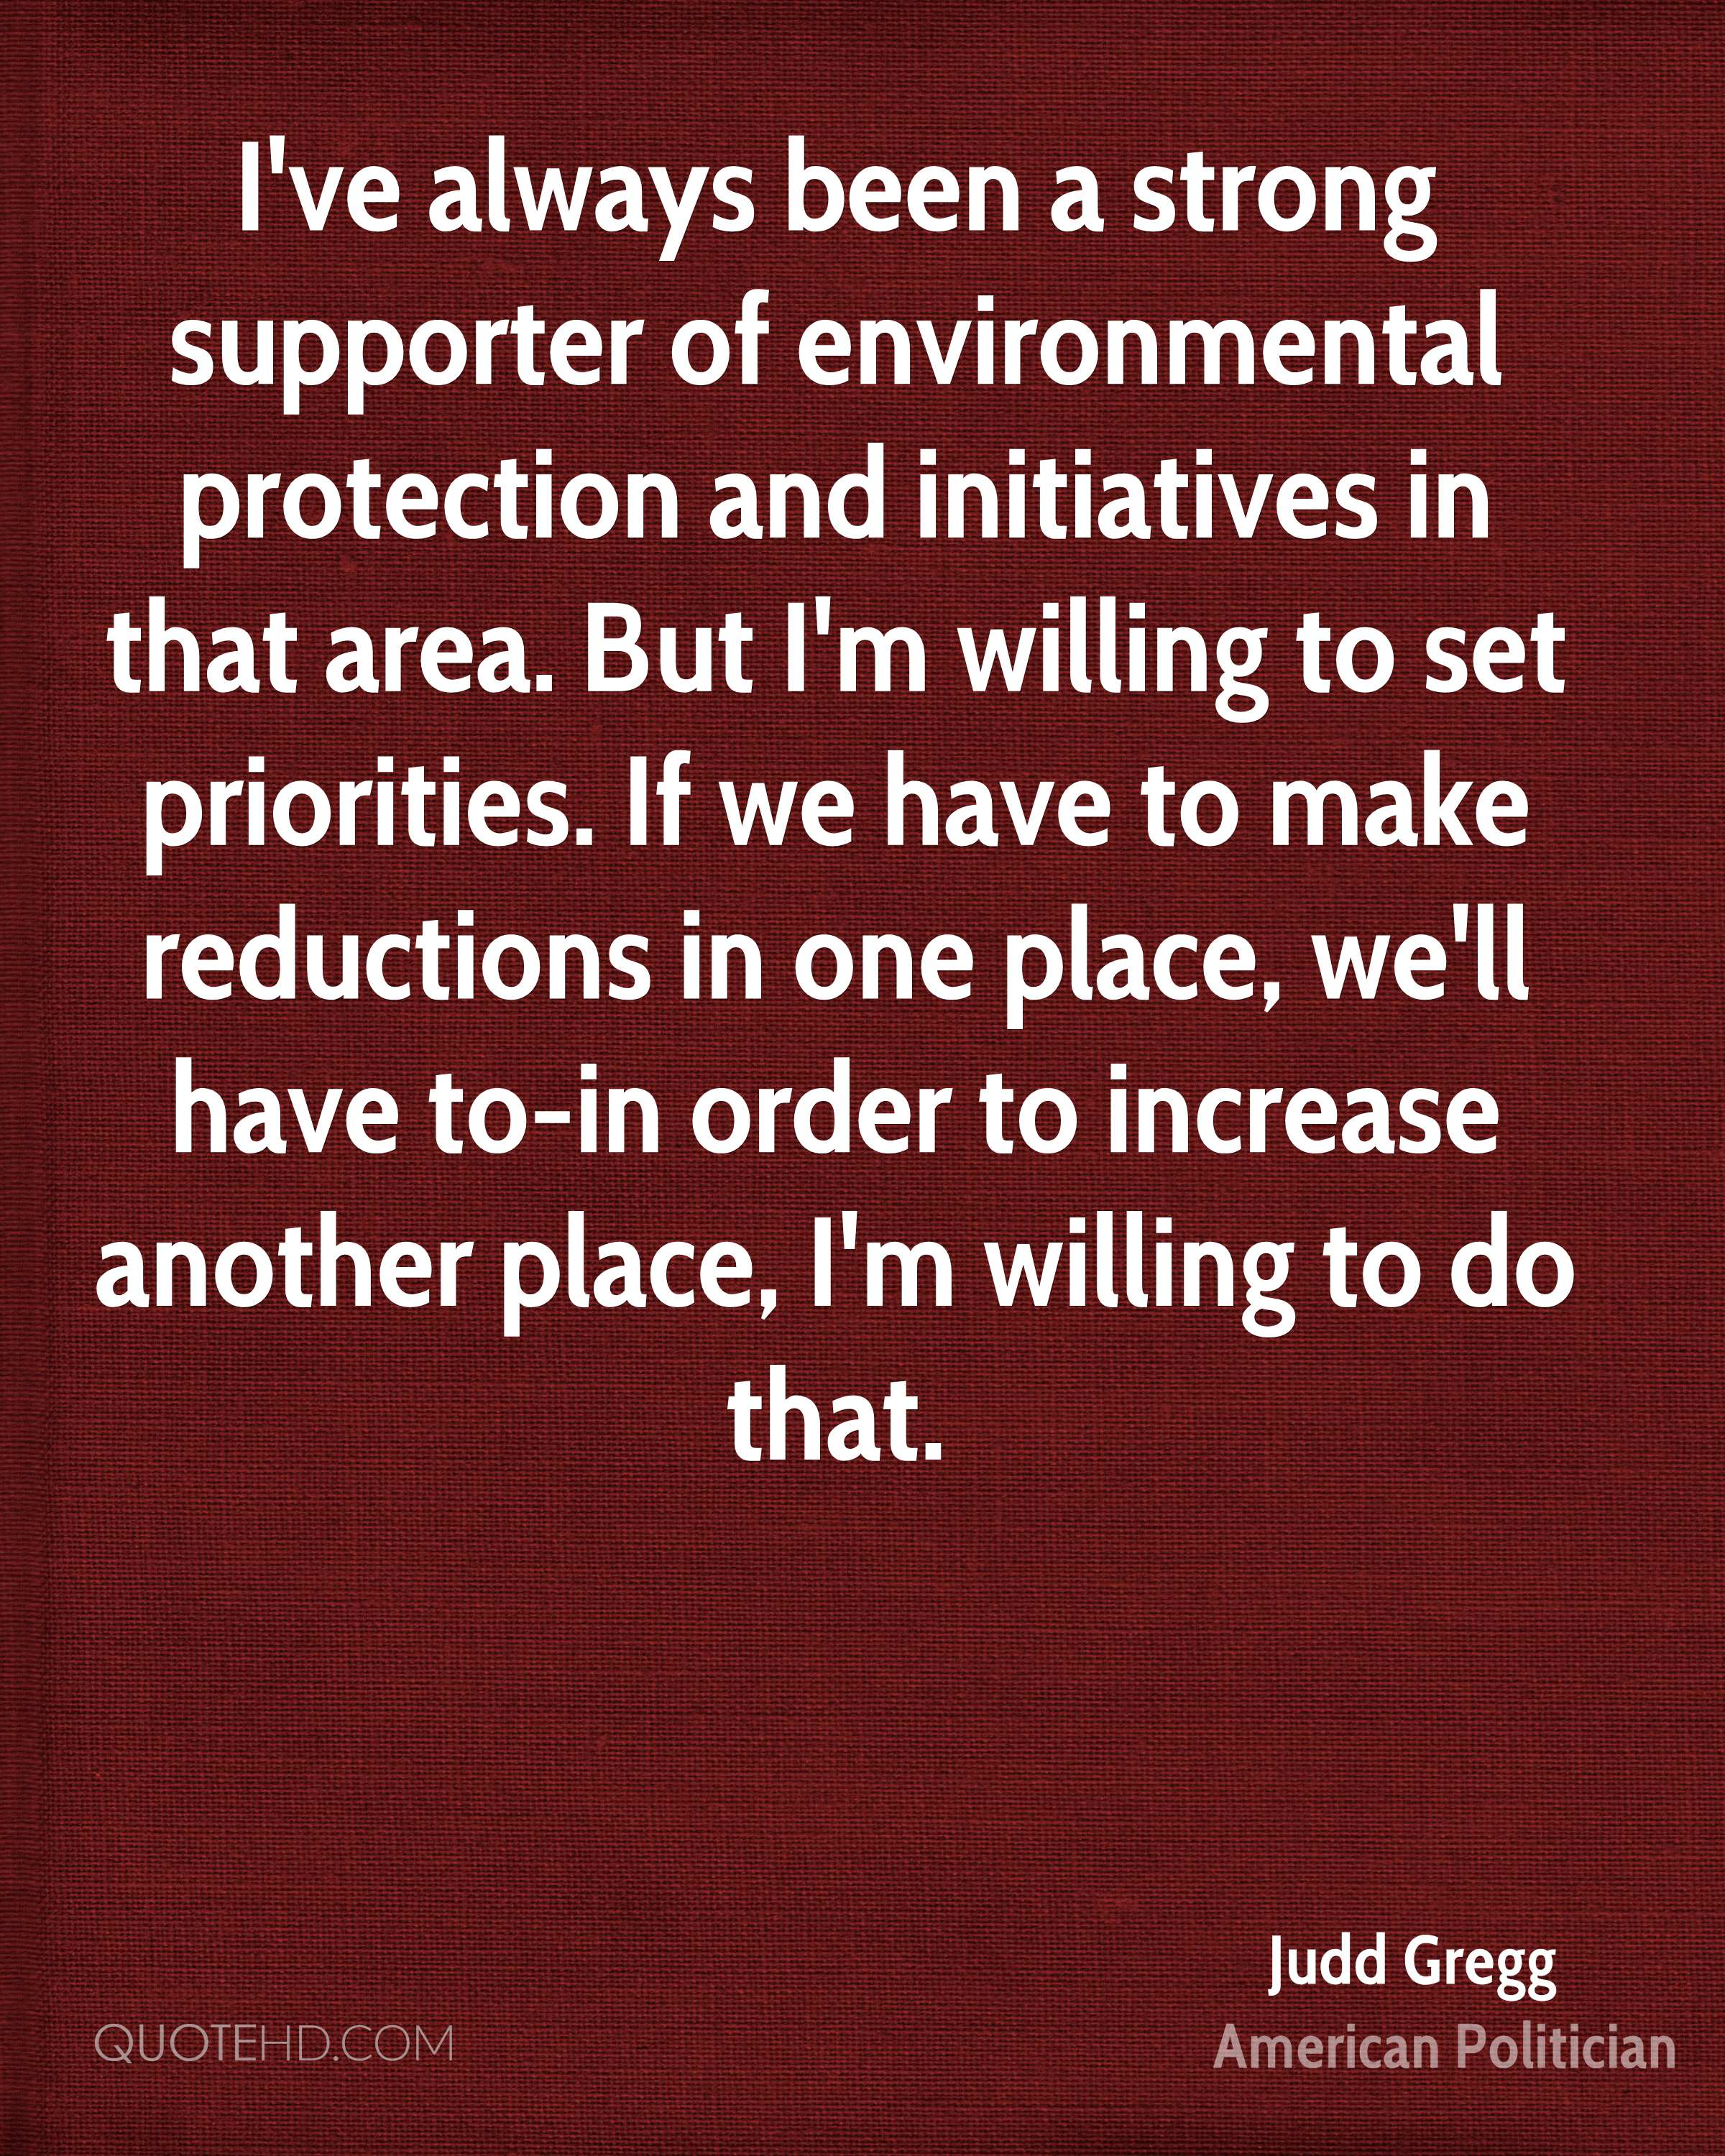 I've always been a strong supporter of environmental protection and initiatives in that area. But I'm willing to set priorities. If we have to make reductions in one place, we'll have to-in order to increase another place, I'm willing to do that.